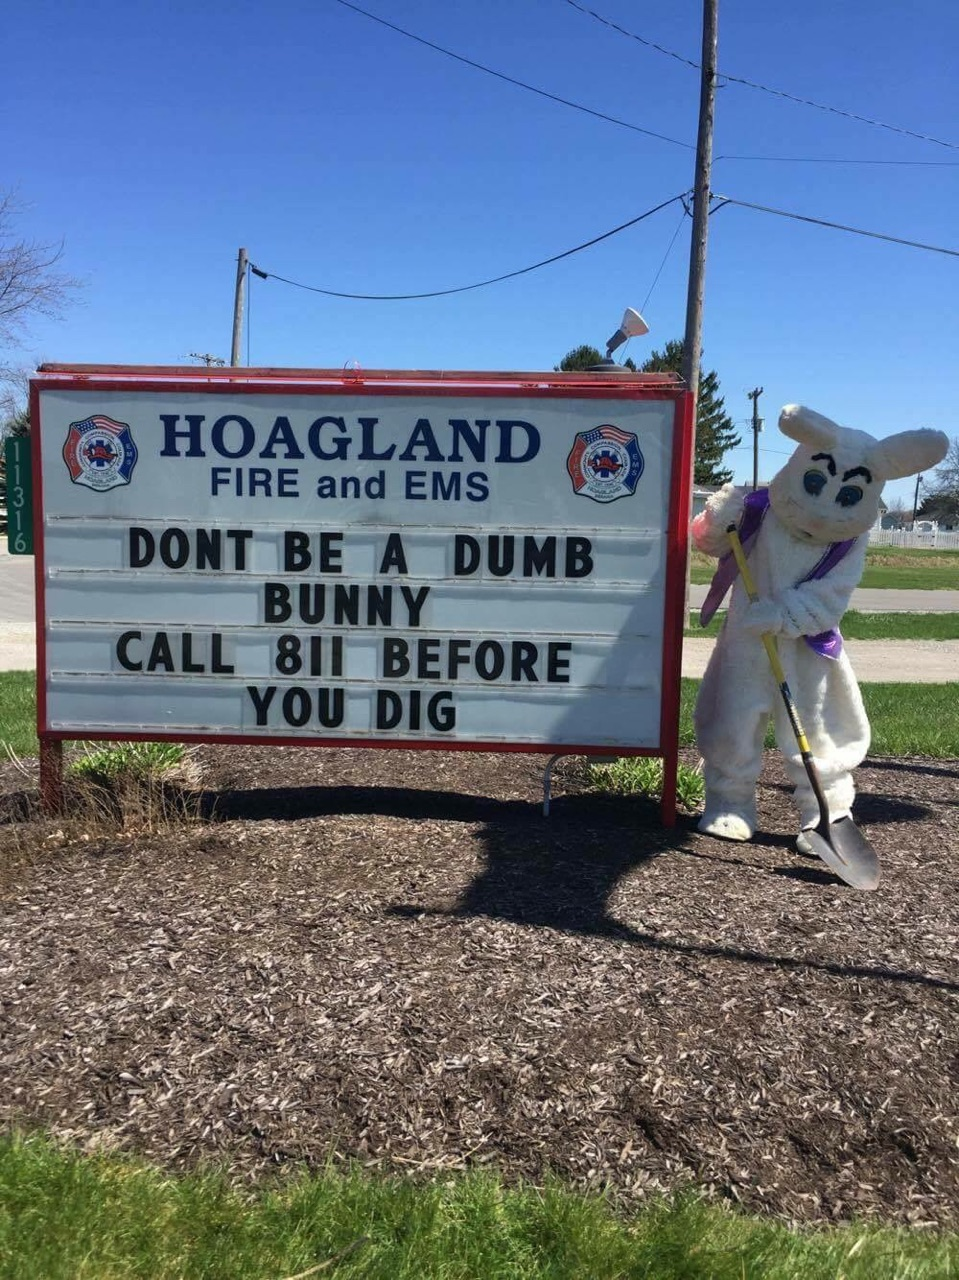 """Hoagland fire and ems - """"don't be a dumb bunny..."""""""